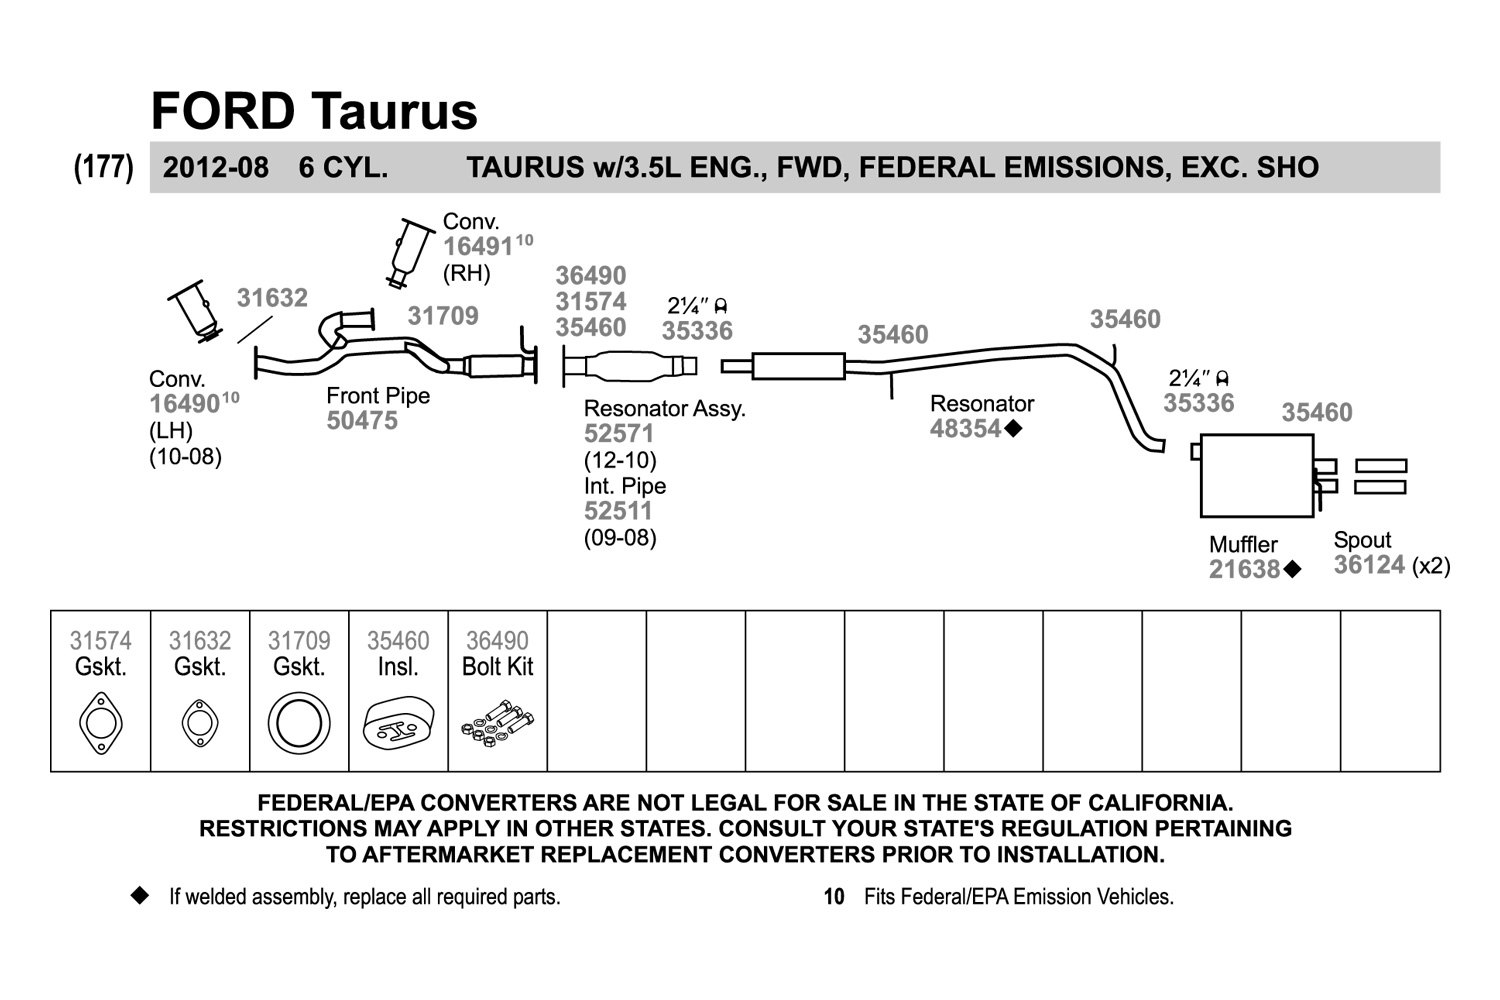 2012 ford taurus exhaust diagram search for wiring diagrams u2022 rh  stephenpoon co 2005 Taurus Vacuum Diagram 2005 ford taurus exhaust diagram